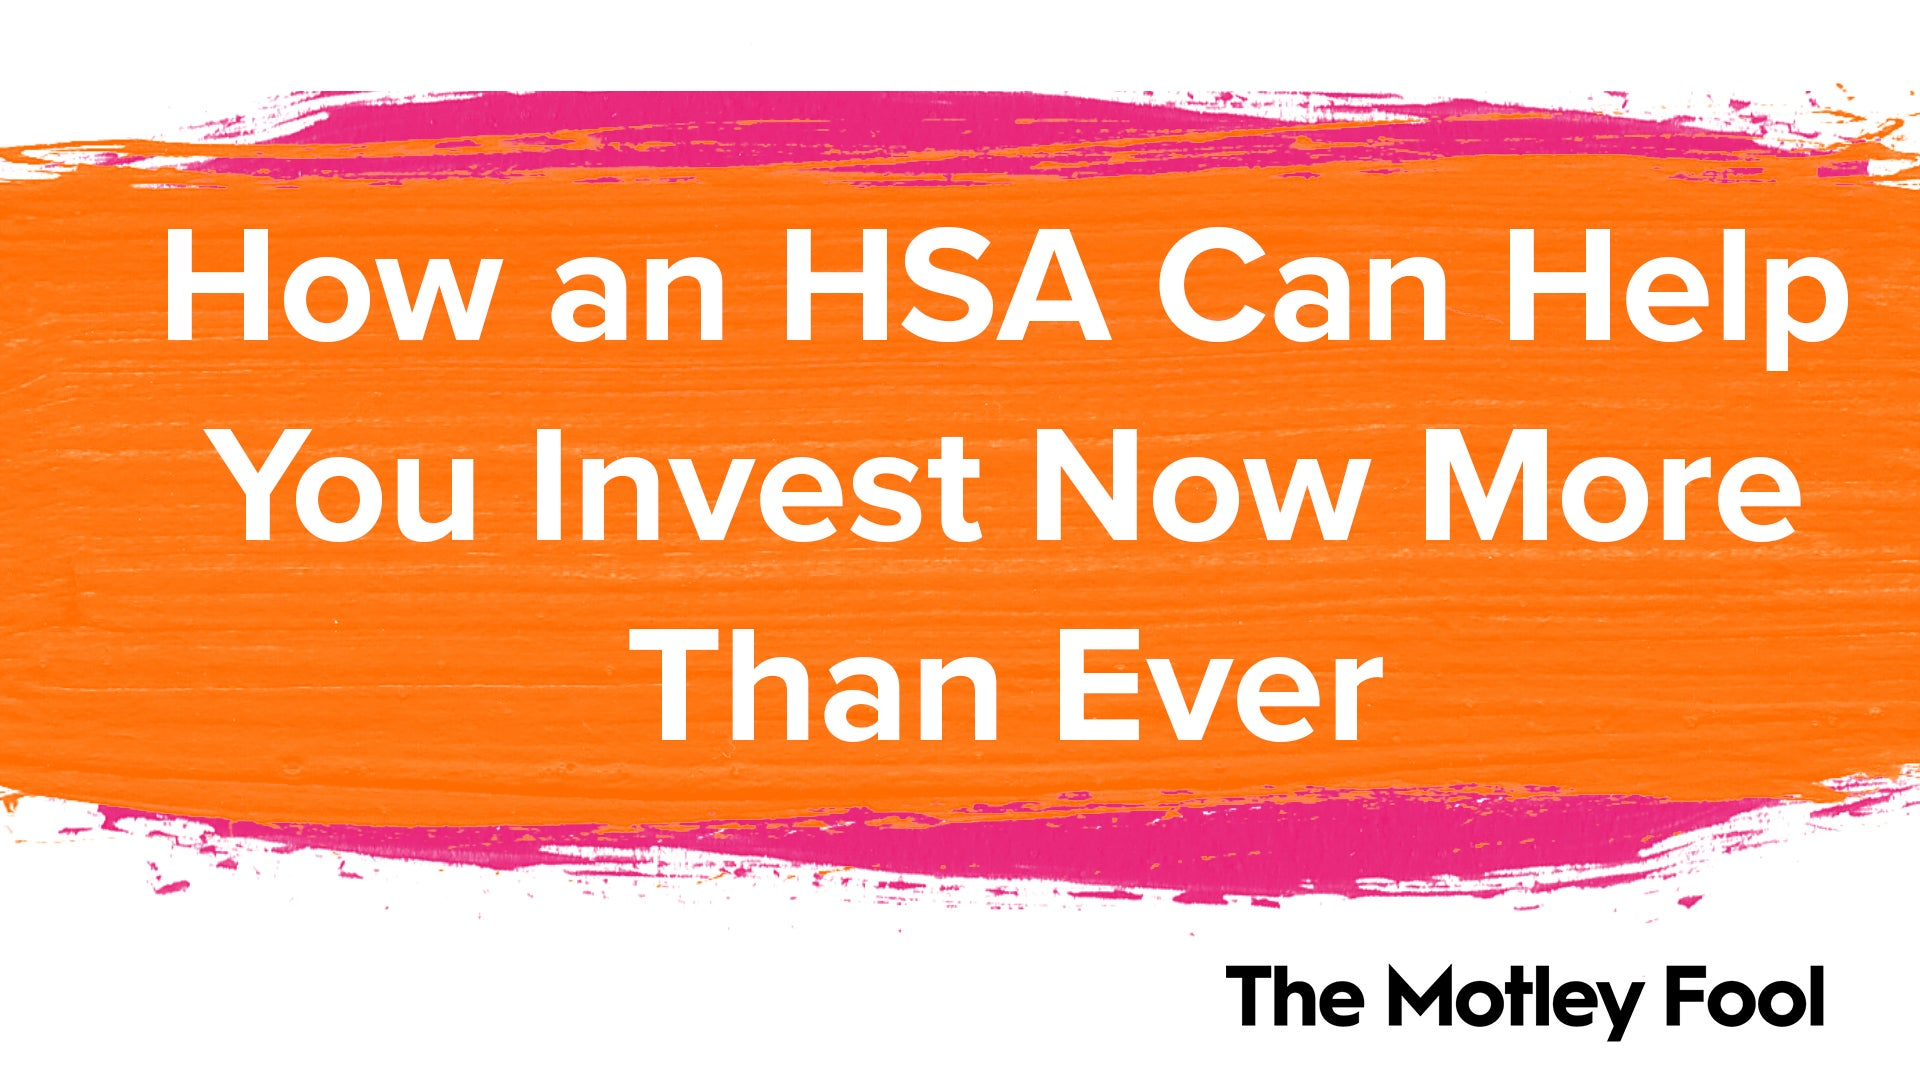 How an HSA Can Help You Invest Now More Than Ever